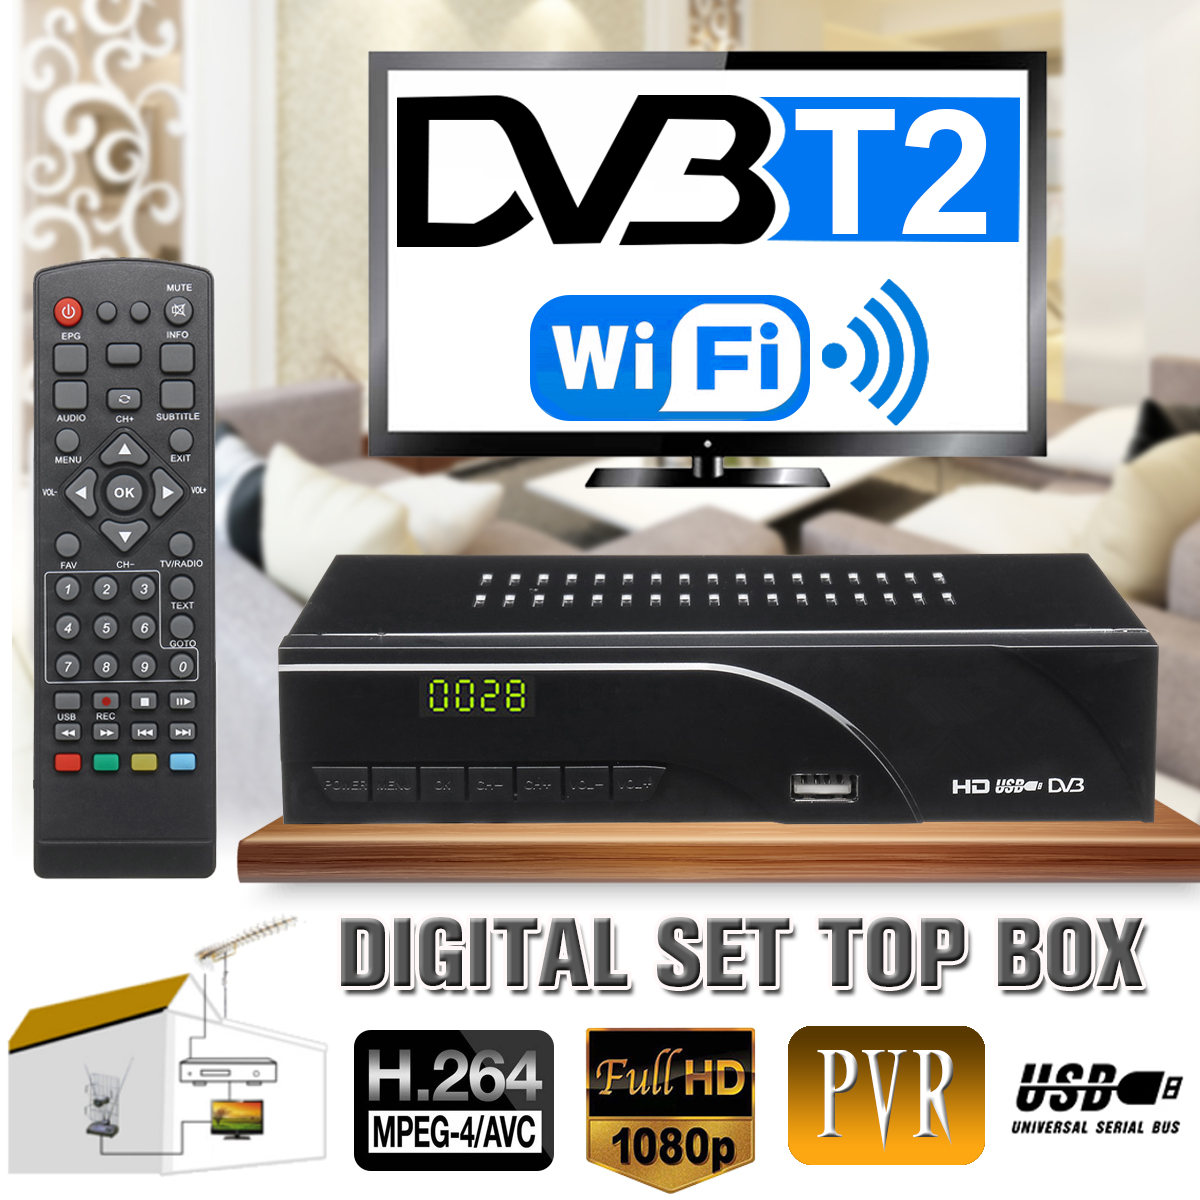 DVB T2 TV Satellite Receiver Full HD 1080P Digital TV Tuner Smart Set Top Box MPEG 4 Only for H.264 for UK Malaysia Singapore